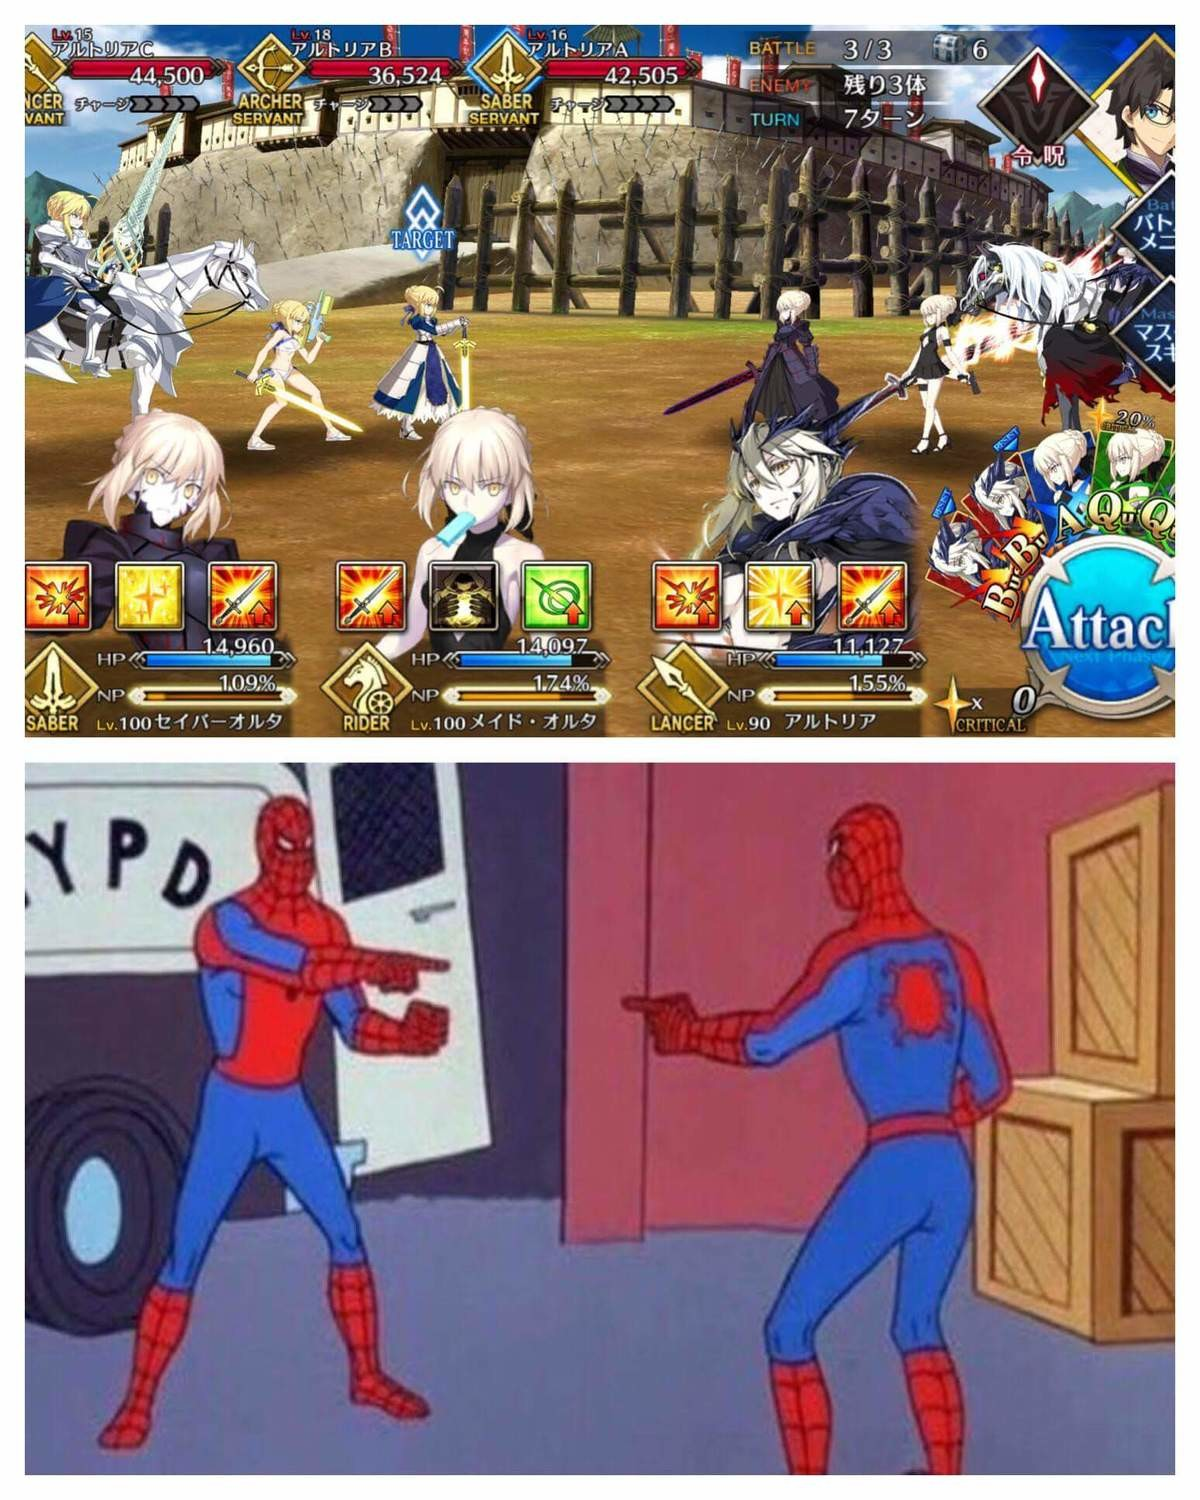 Who Wins?. join list: Lewds4DHeart (1587 subs)Mention History join list:. Nobody wins cause the actual game is .